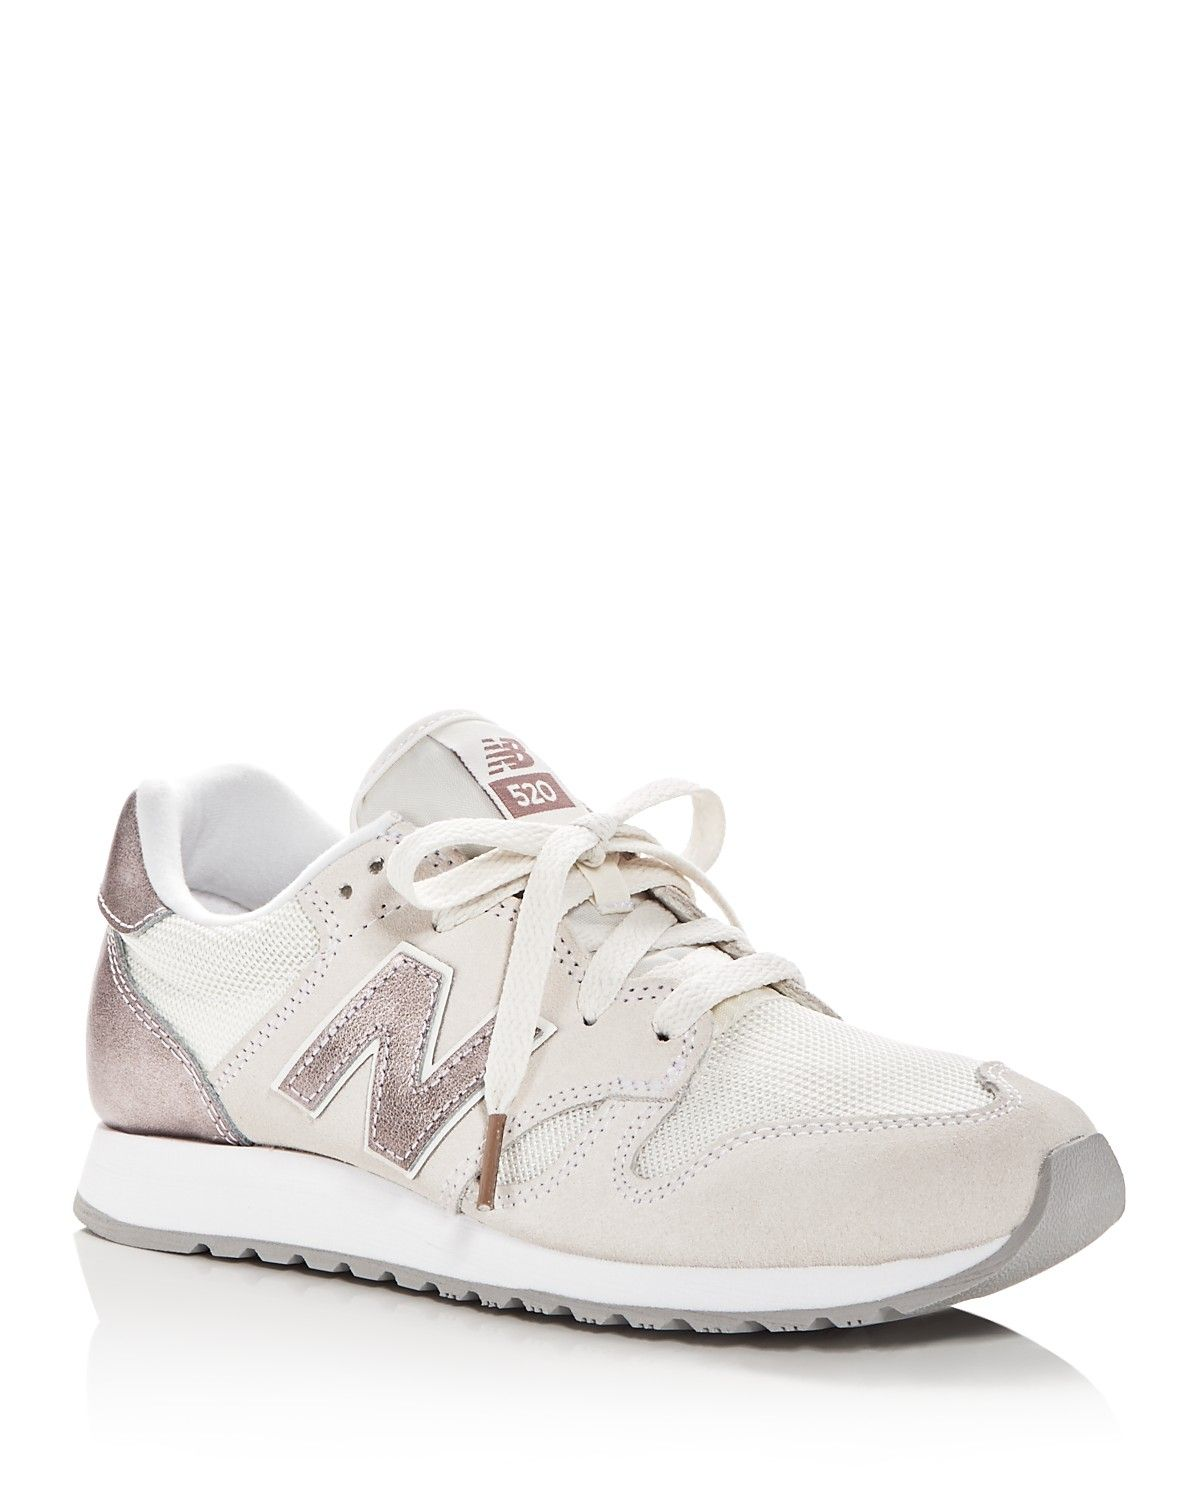 New Balance Women's 520 Lace Up Sneakers Shoes - Bloomingdale's ...